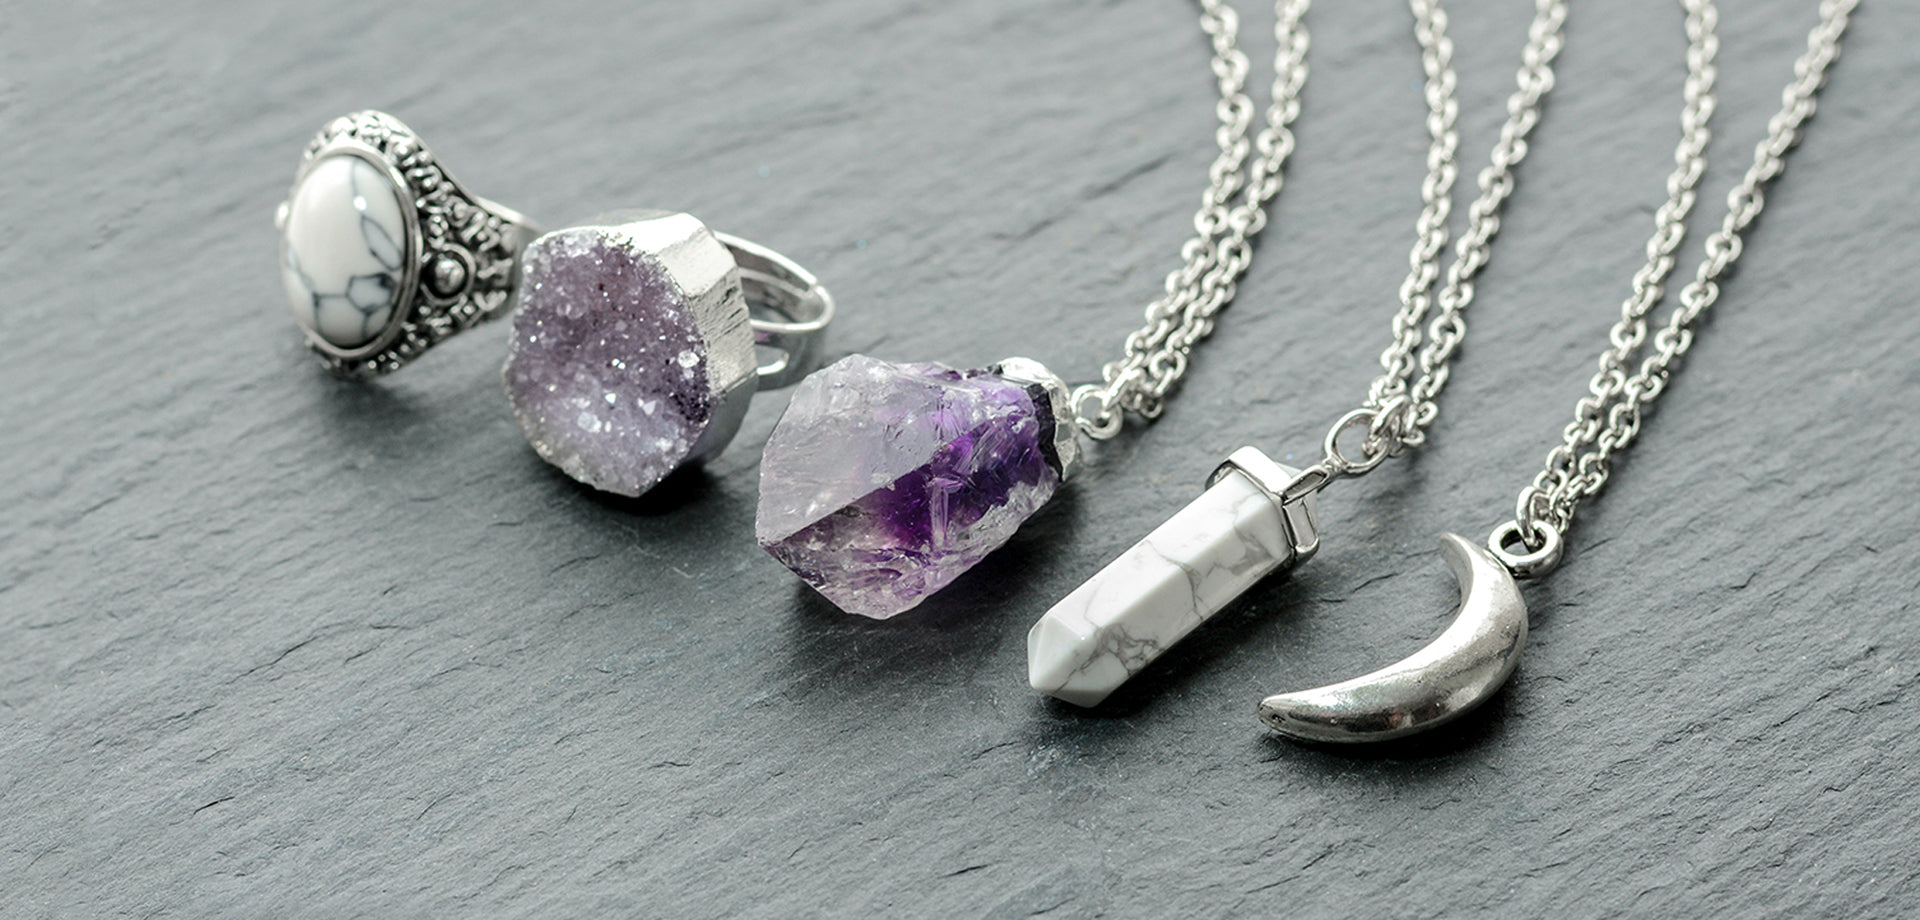 Amethyst crystal pendants to sparkly quartz rings. Find the perfect gift here